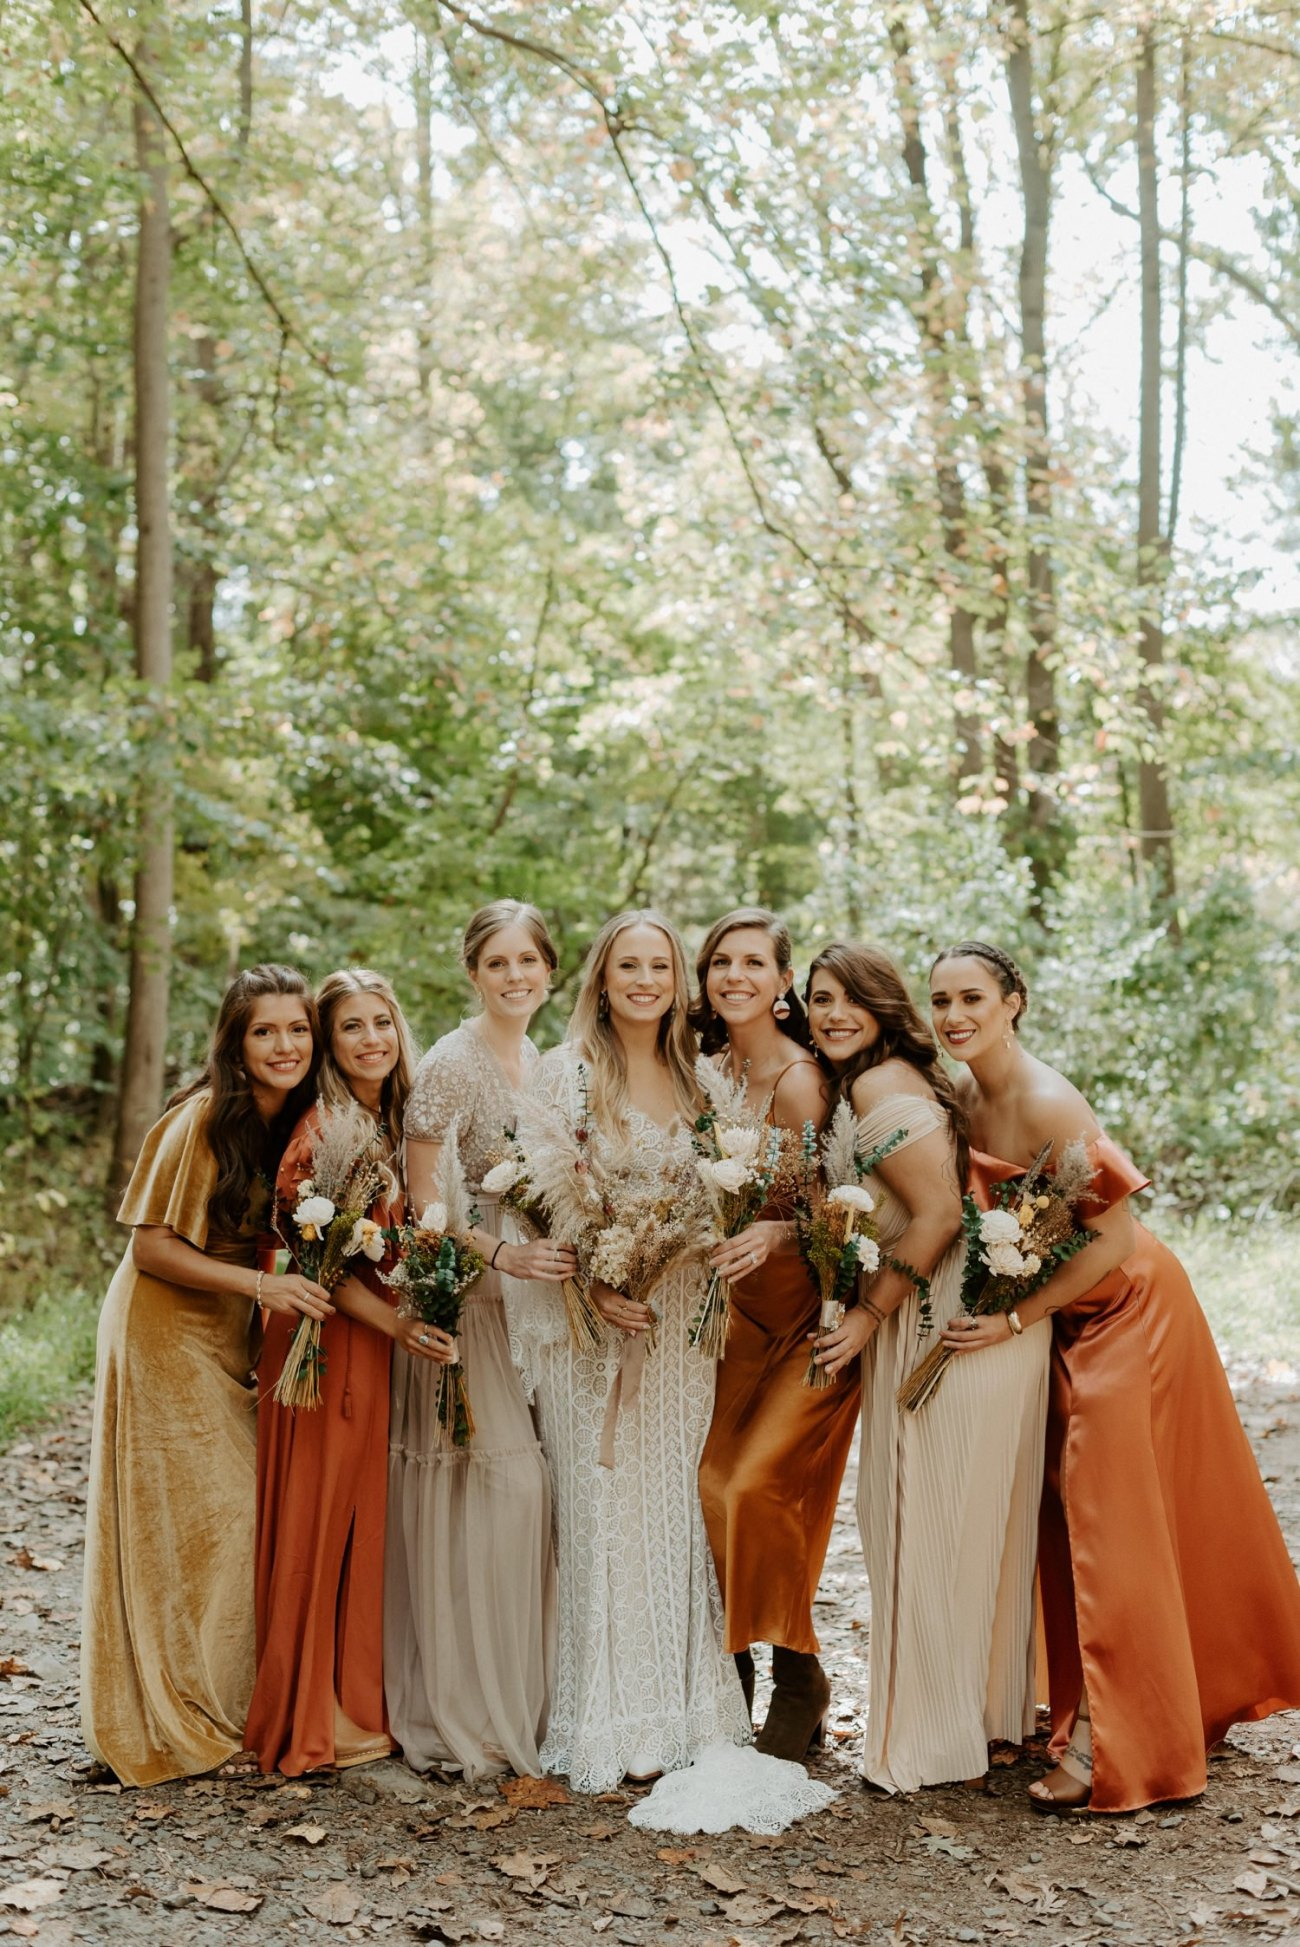 New Jersey Backyard Wedding Vintage Boho Wedding Hemlock Falls NJ Bend Oregon Wedding Phtographer Anais Possamai Photography 040